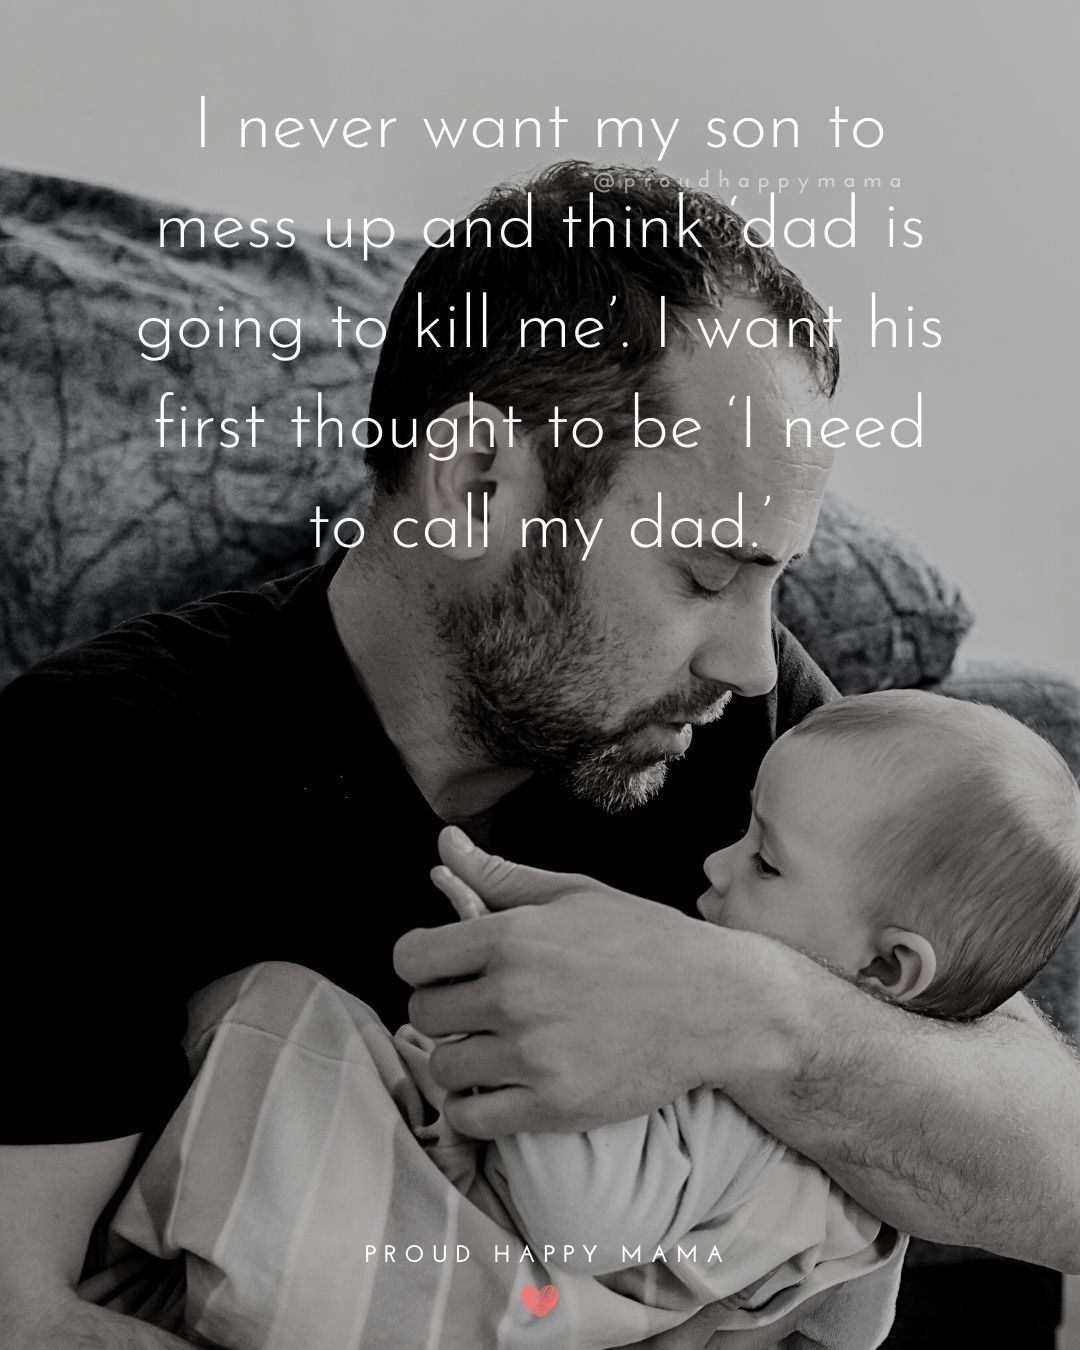 30 Best Father And Son Quotes And Sayings With Images Father Son Quotes My Children Quotes Son Quotes